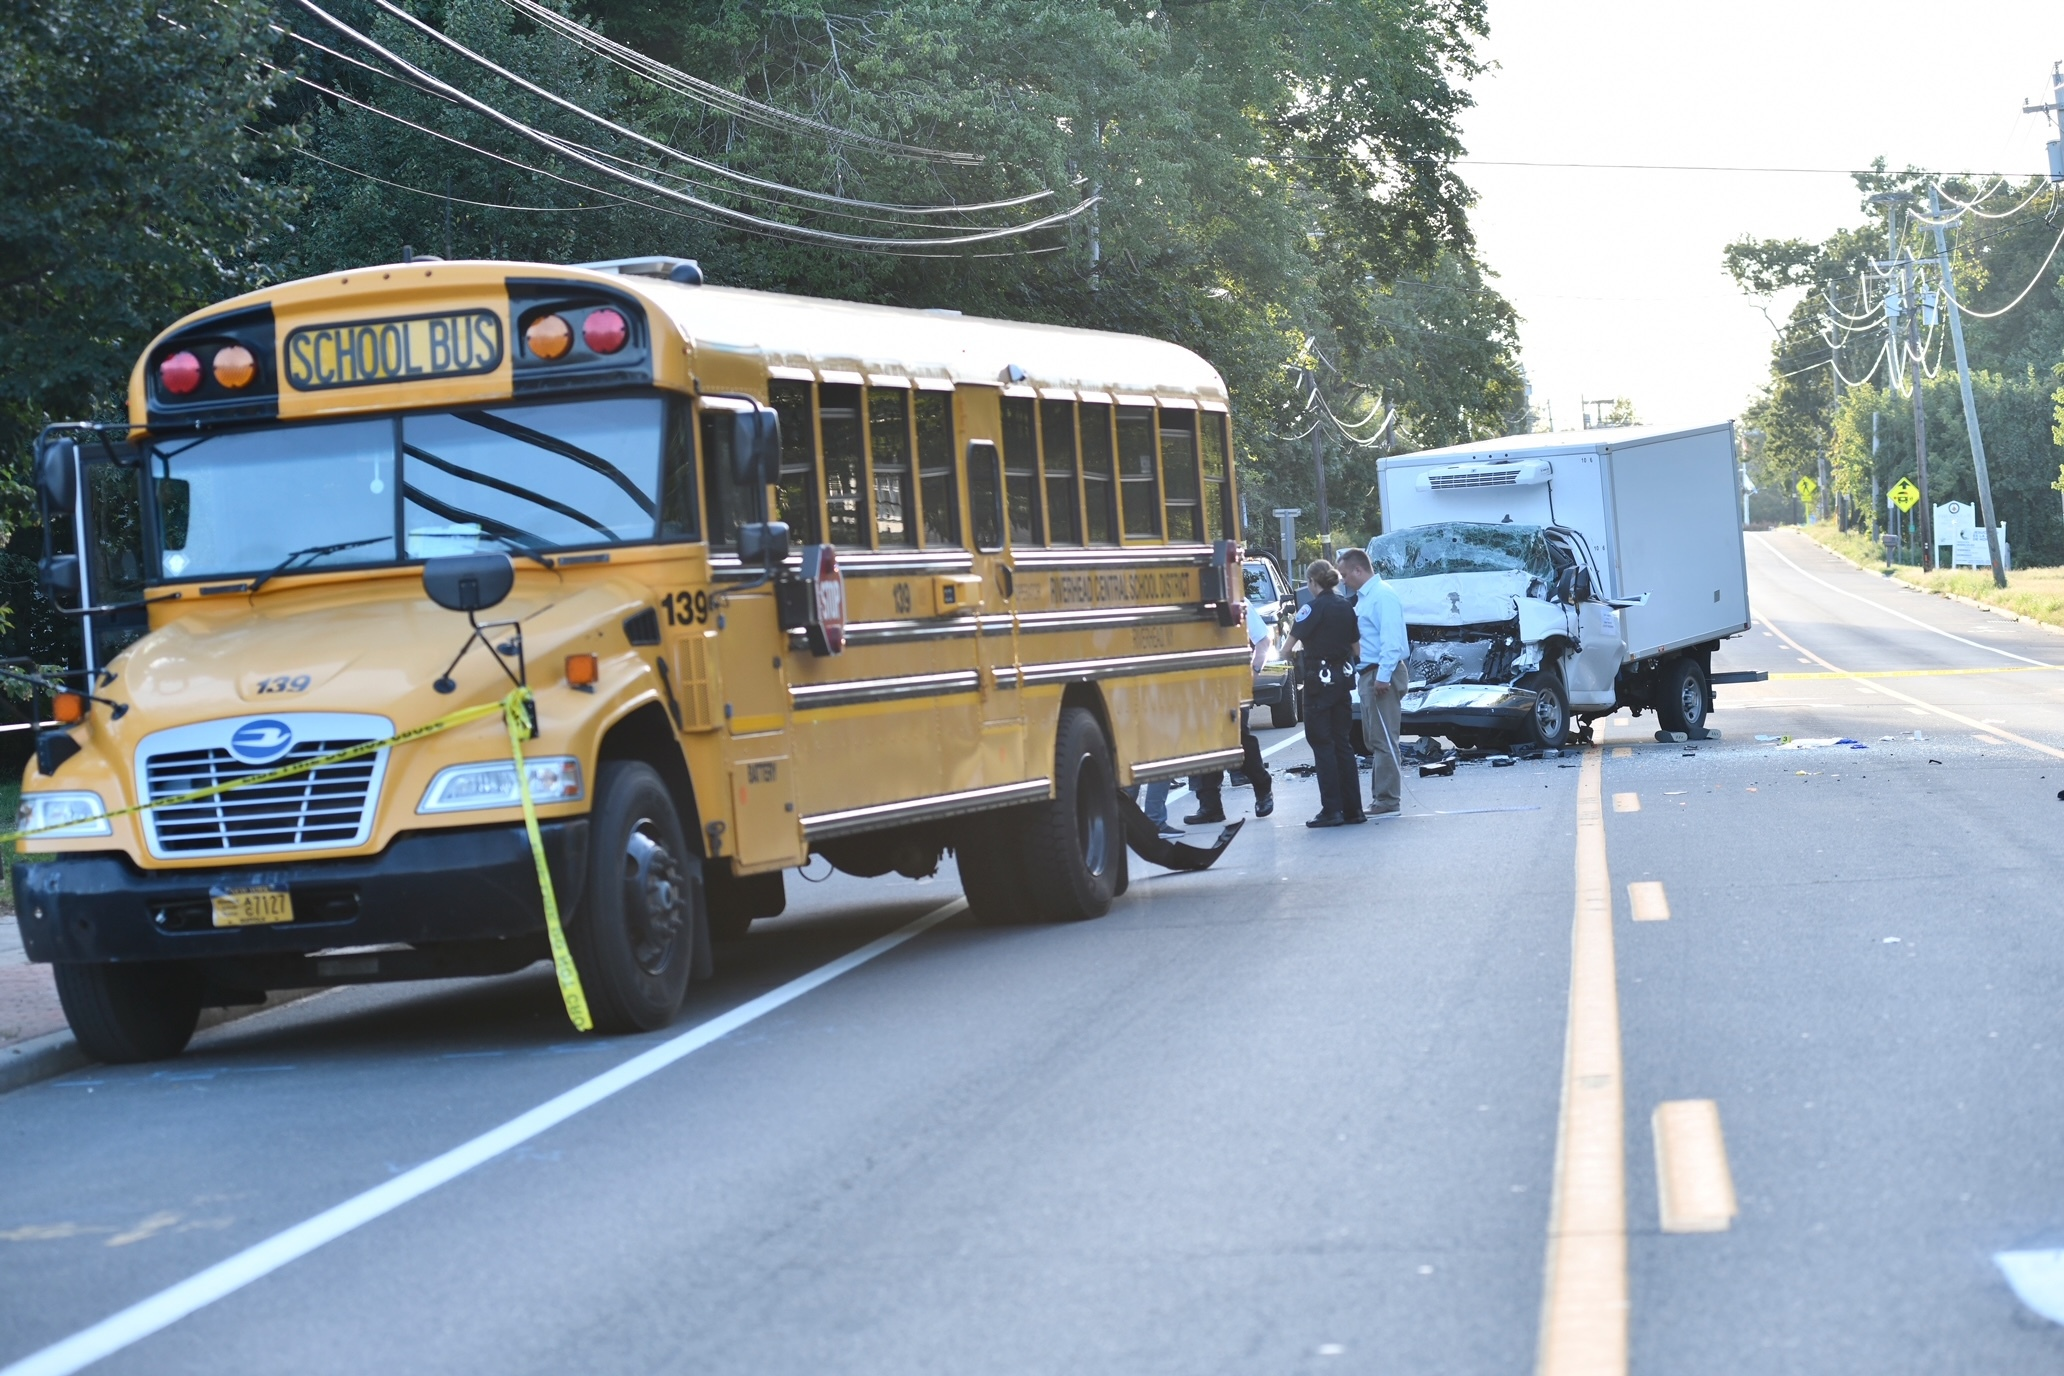 A box truck rear-ended a school bus on Flanders Road on Monday afternoon.